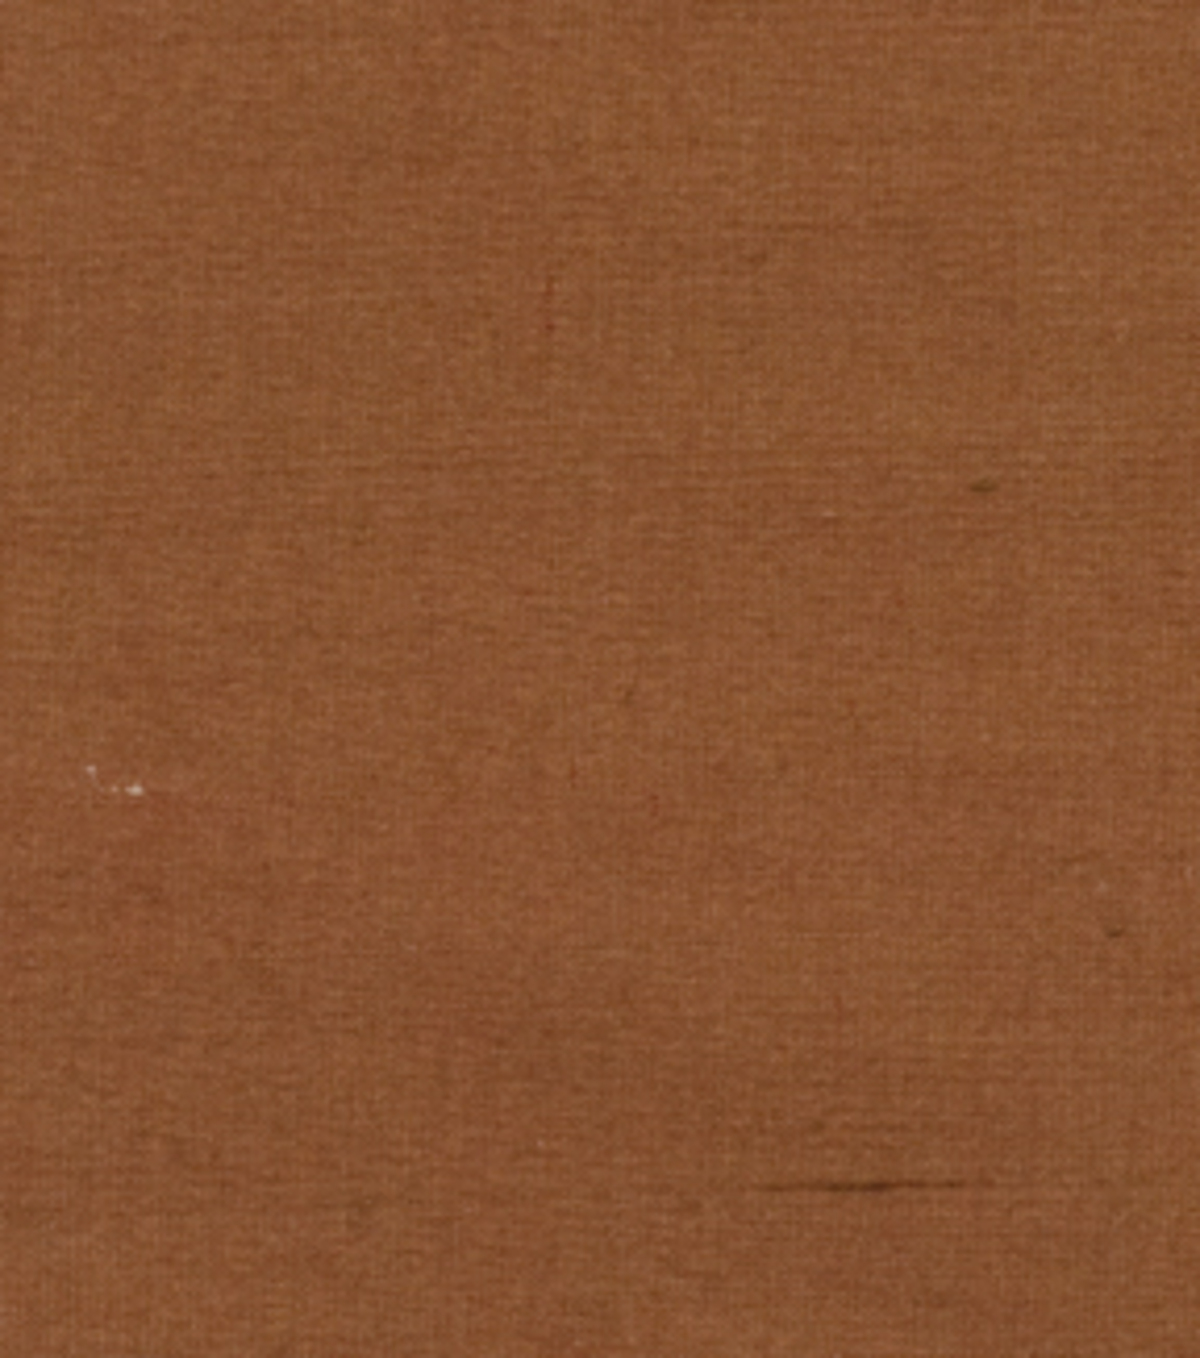 Home Decor 8\u0022x8\u0022 Fabric Swatch-Signature Series Duppioni Silk Spice